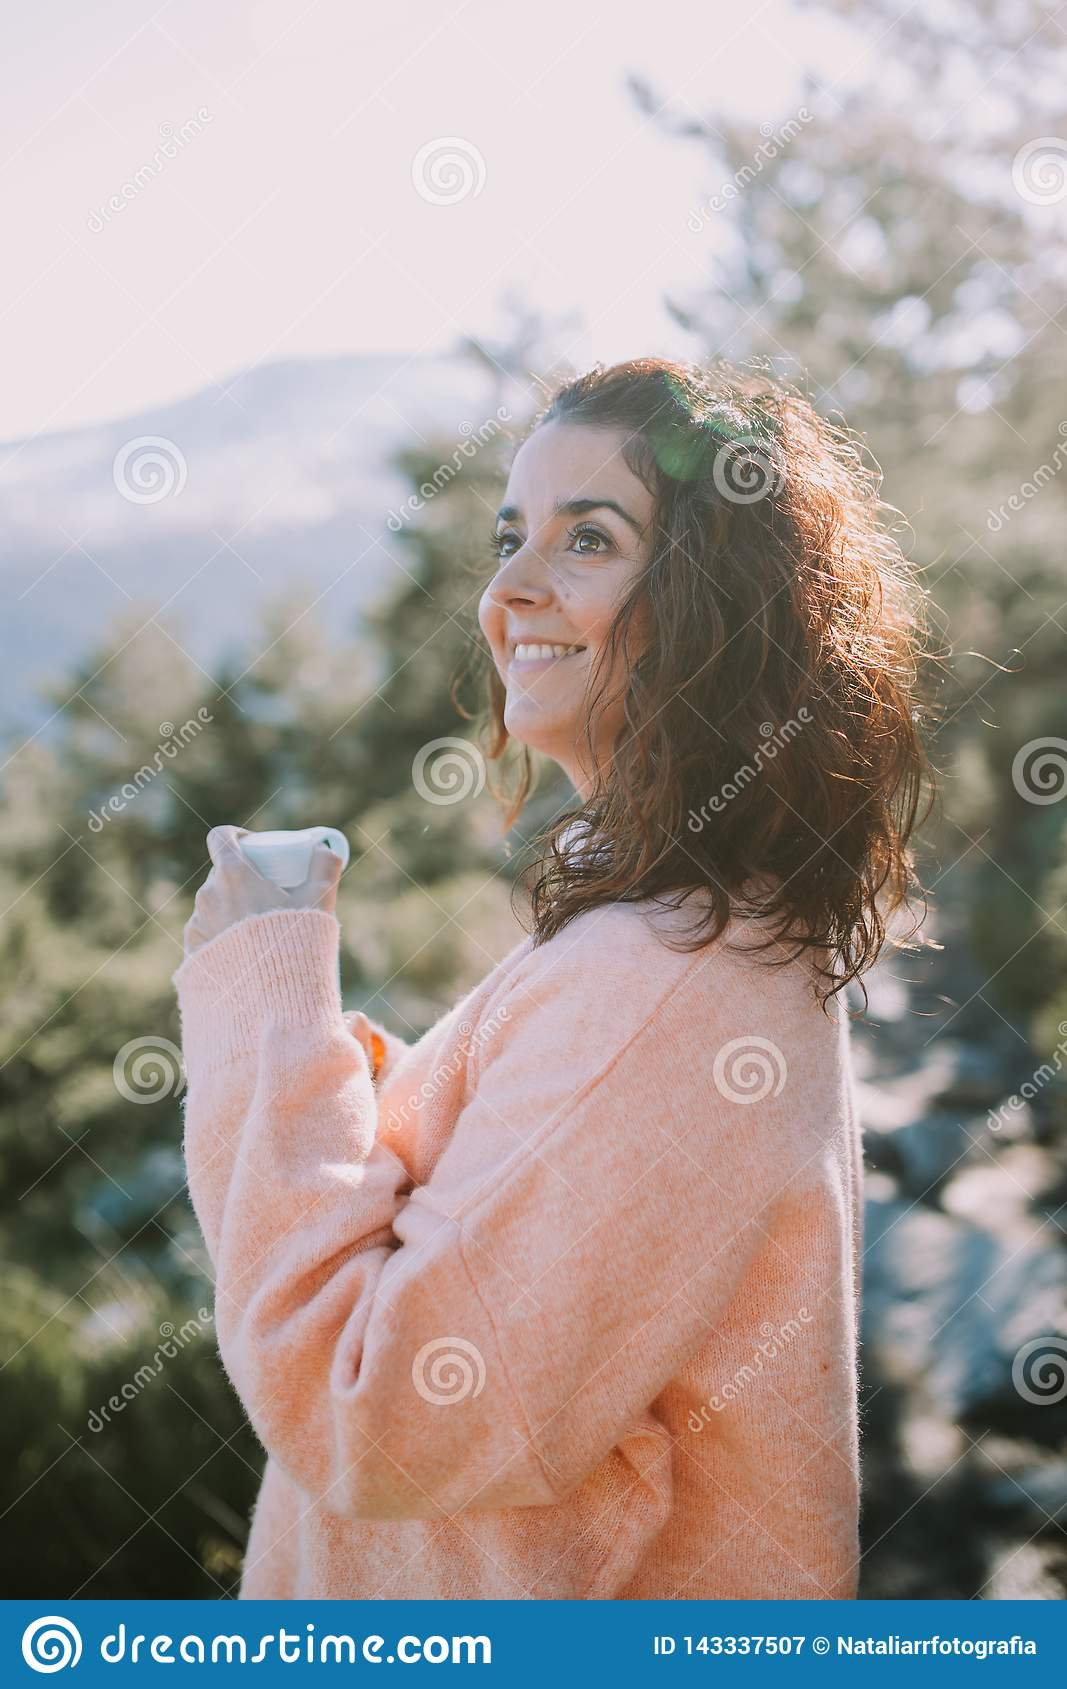 Brunette girl smiles happily as she grabs a bottle of water and looks at the beautiful landscape in front of her